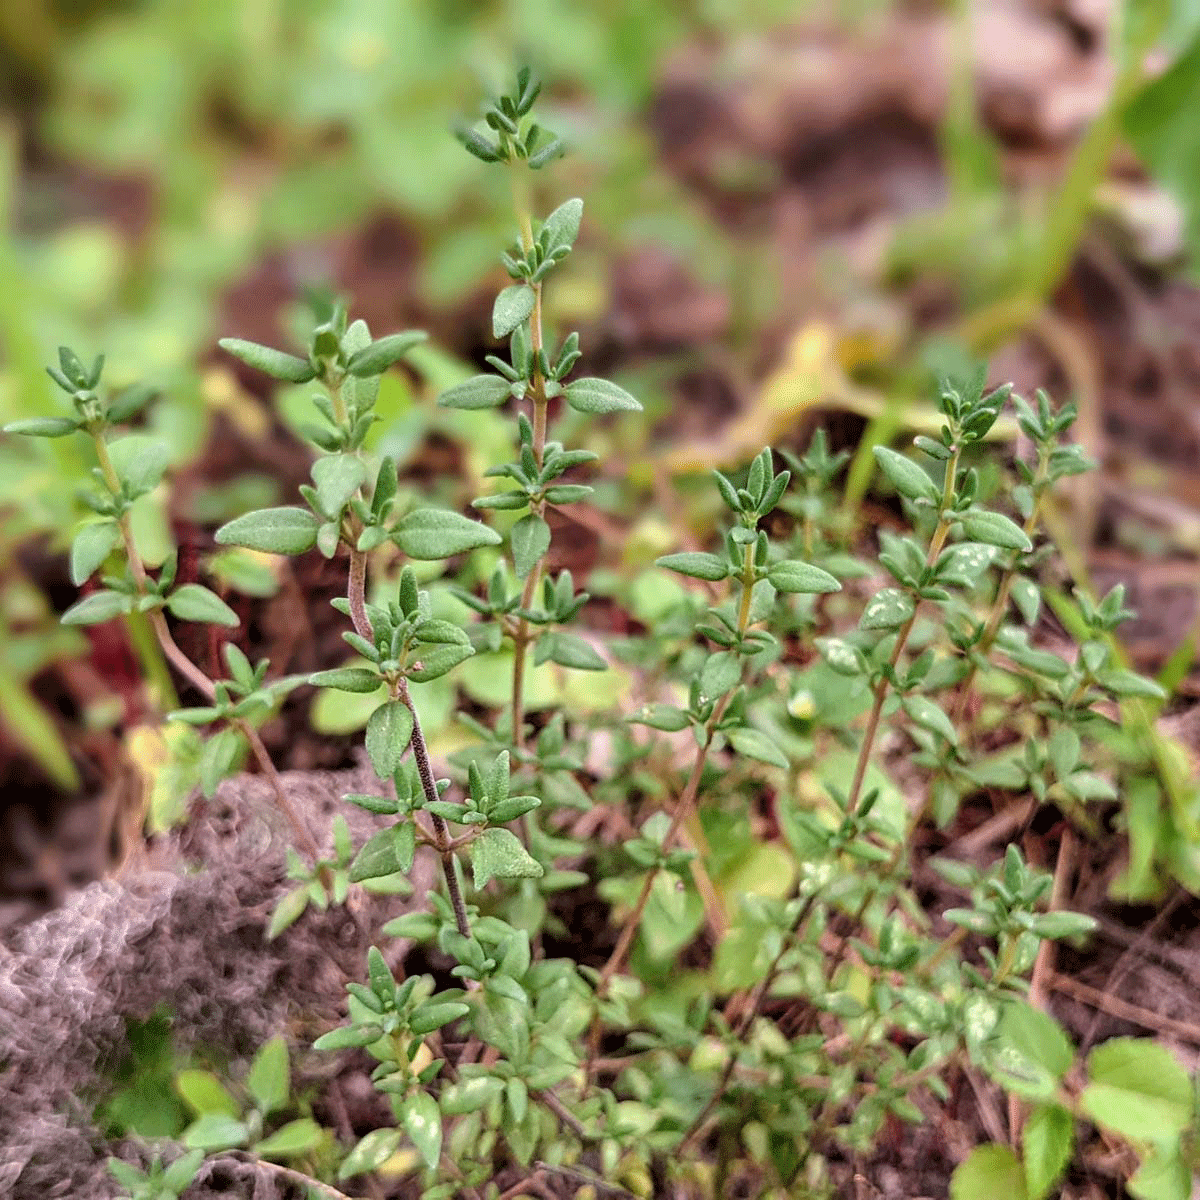 Growing Thyme for Cooking - with a list of Thyme Substitute Ideas